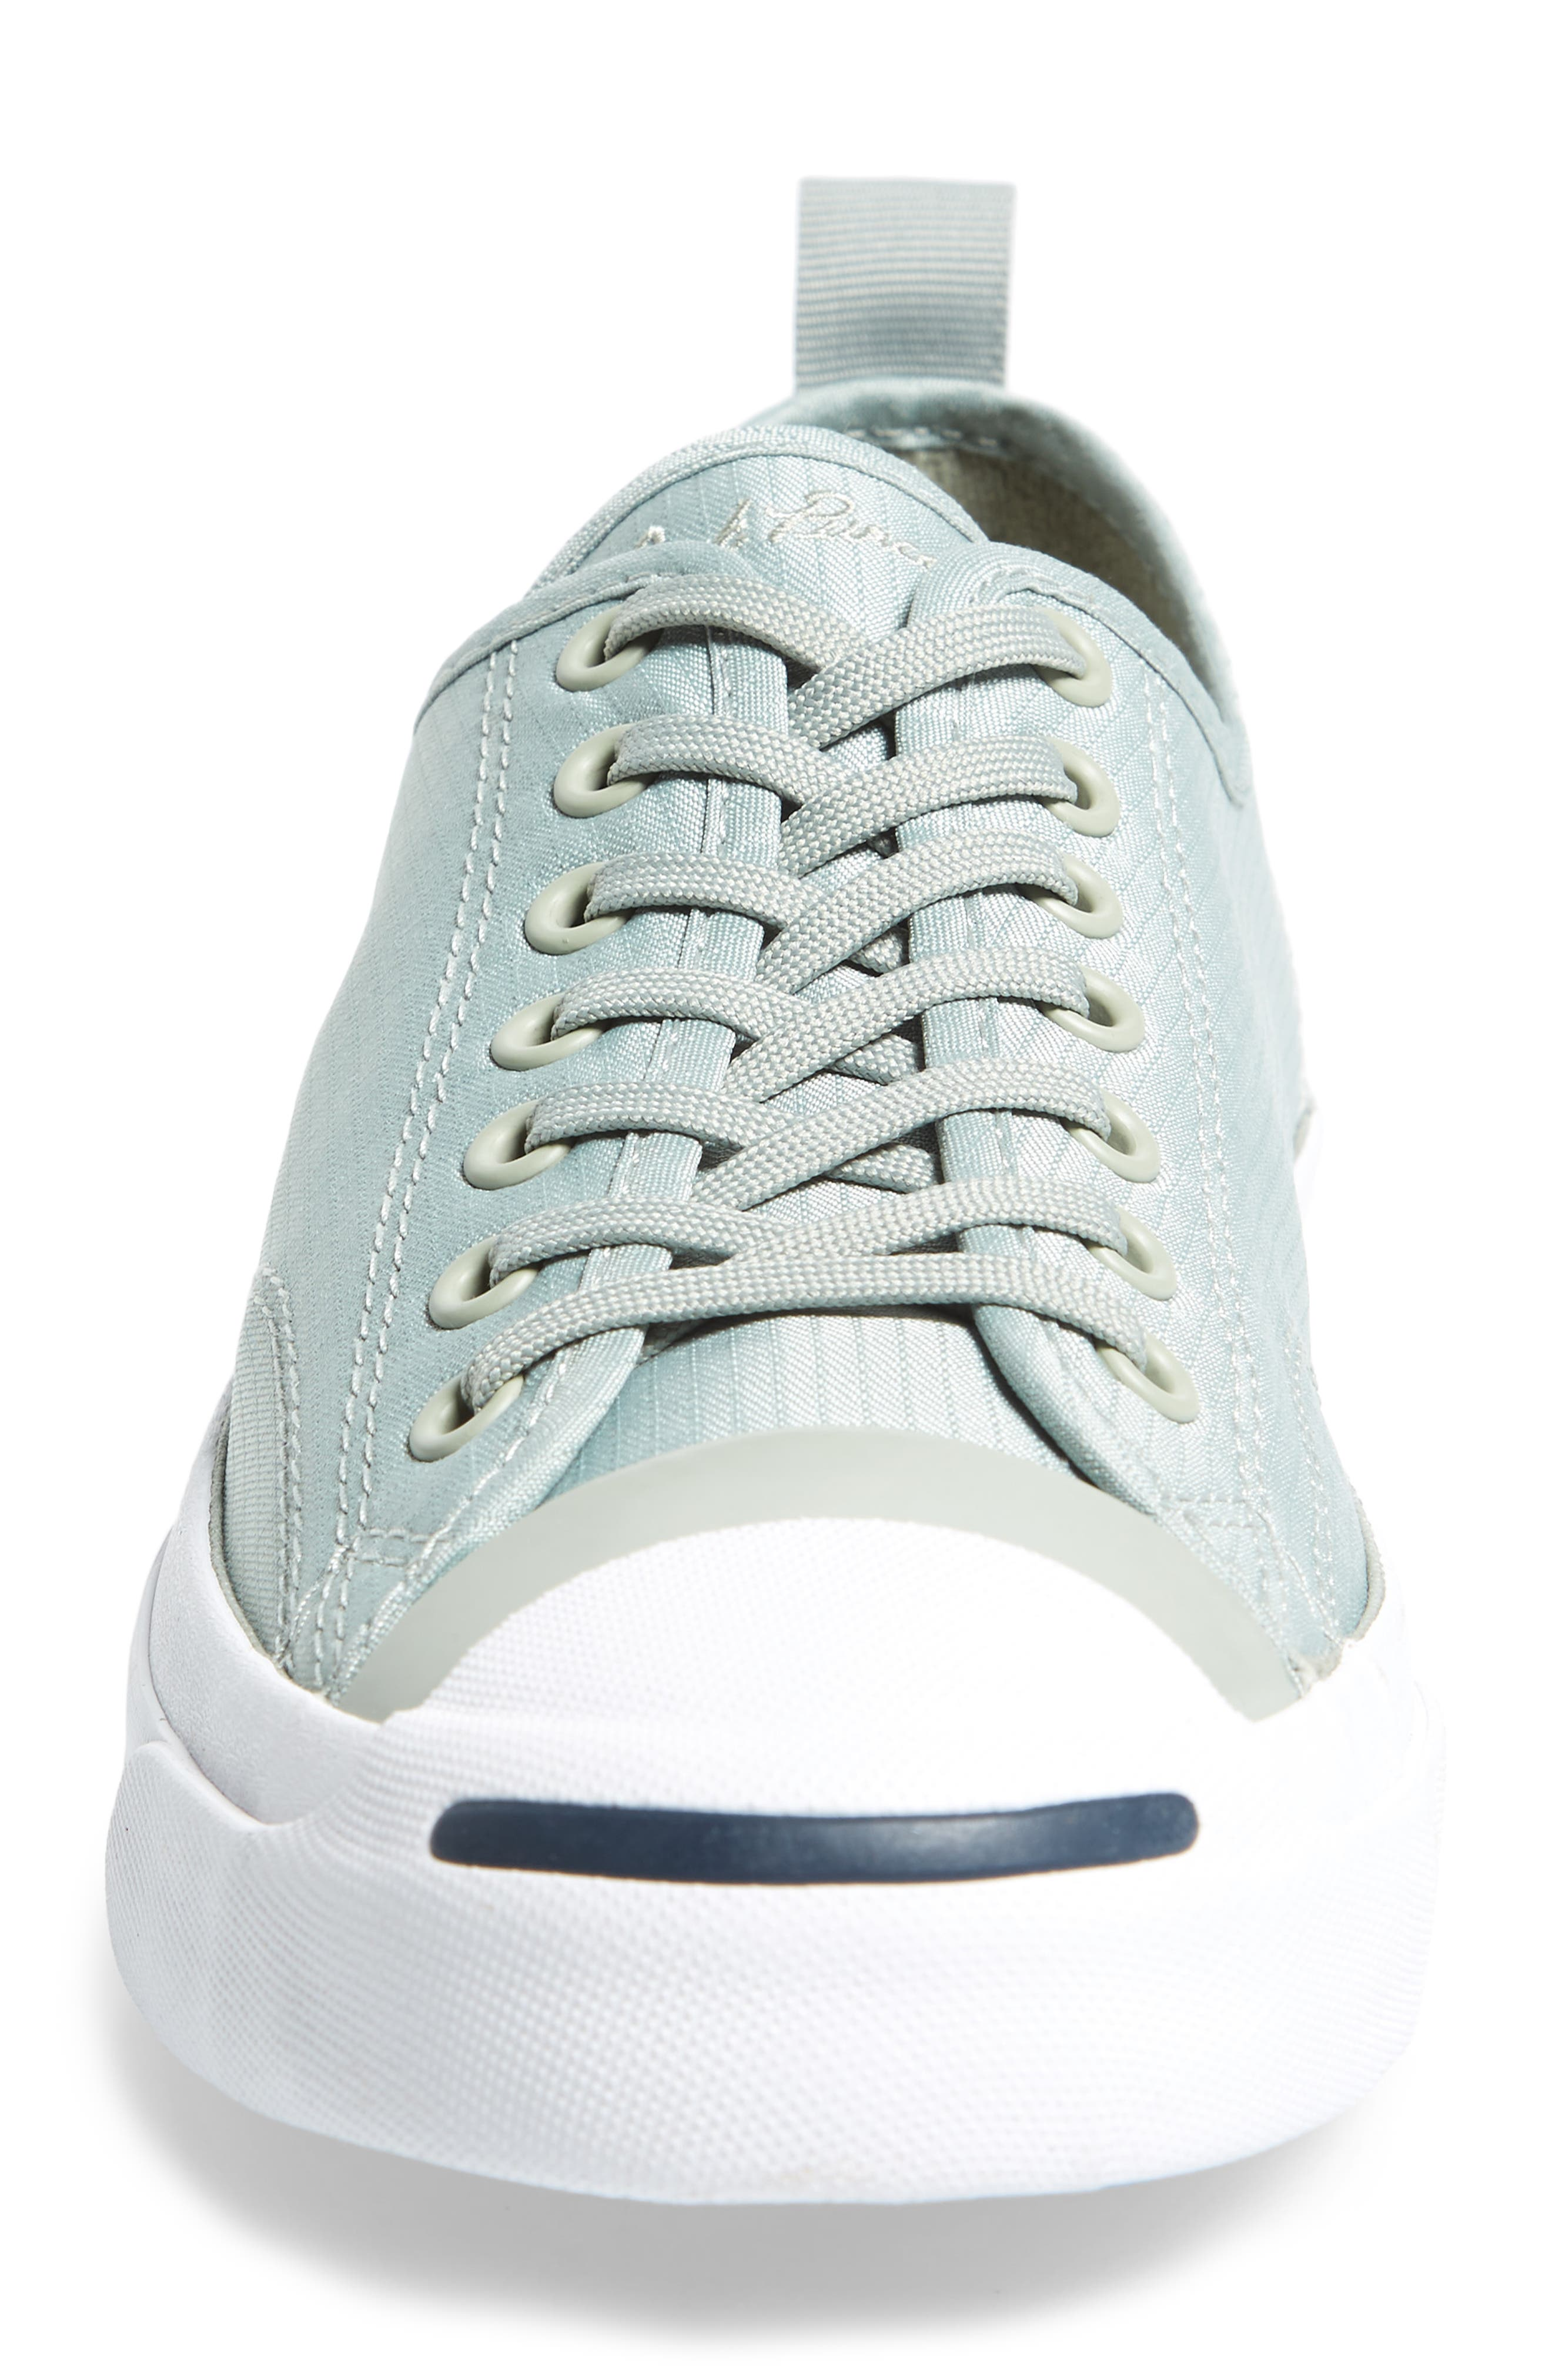 Jack Purcell Ripstop Sneaker,                             Alternate thumbnail 8, color,